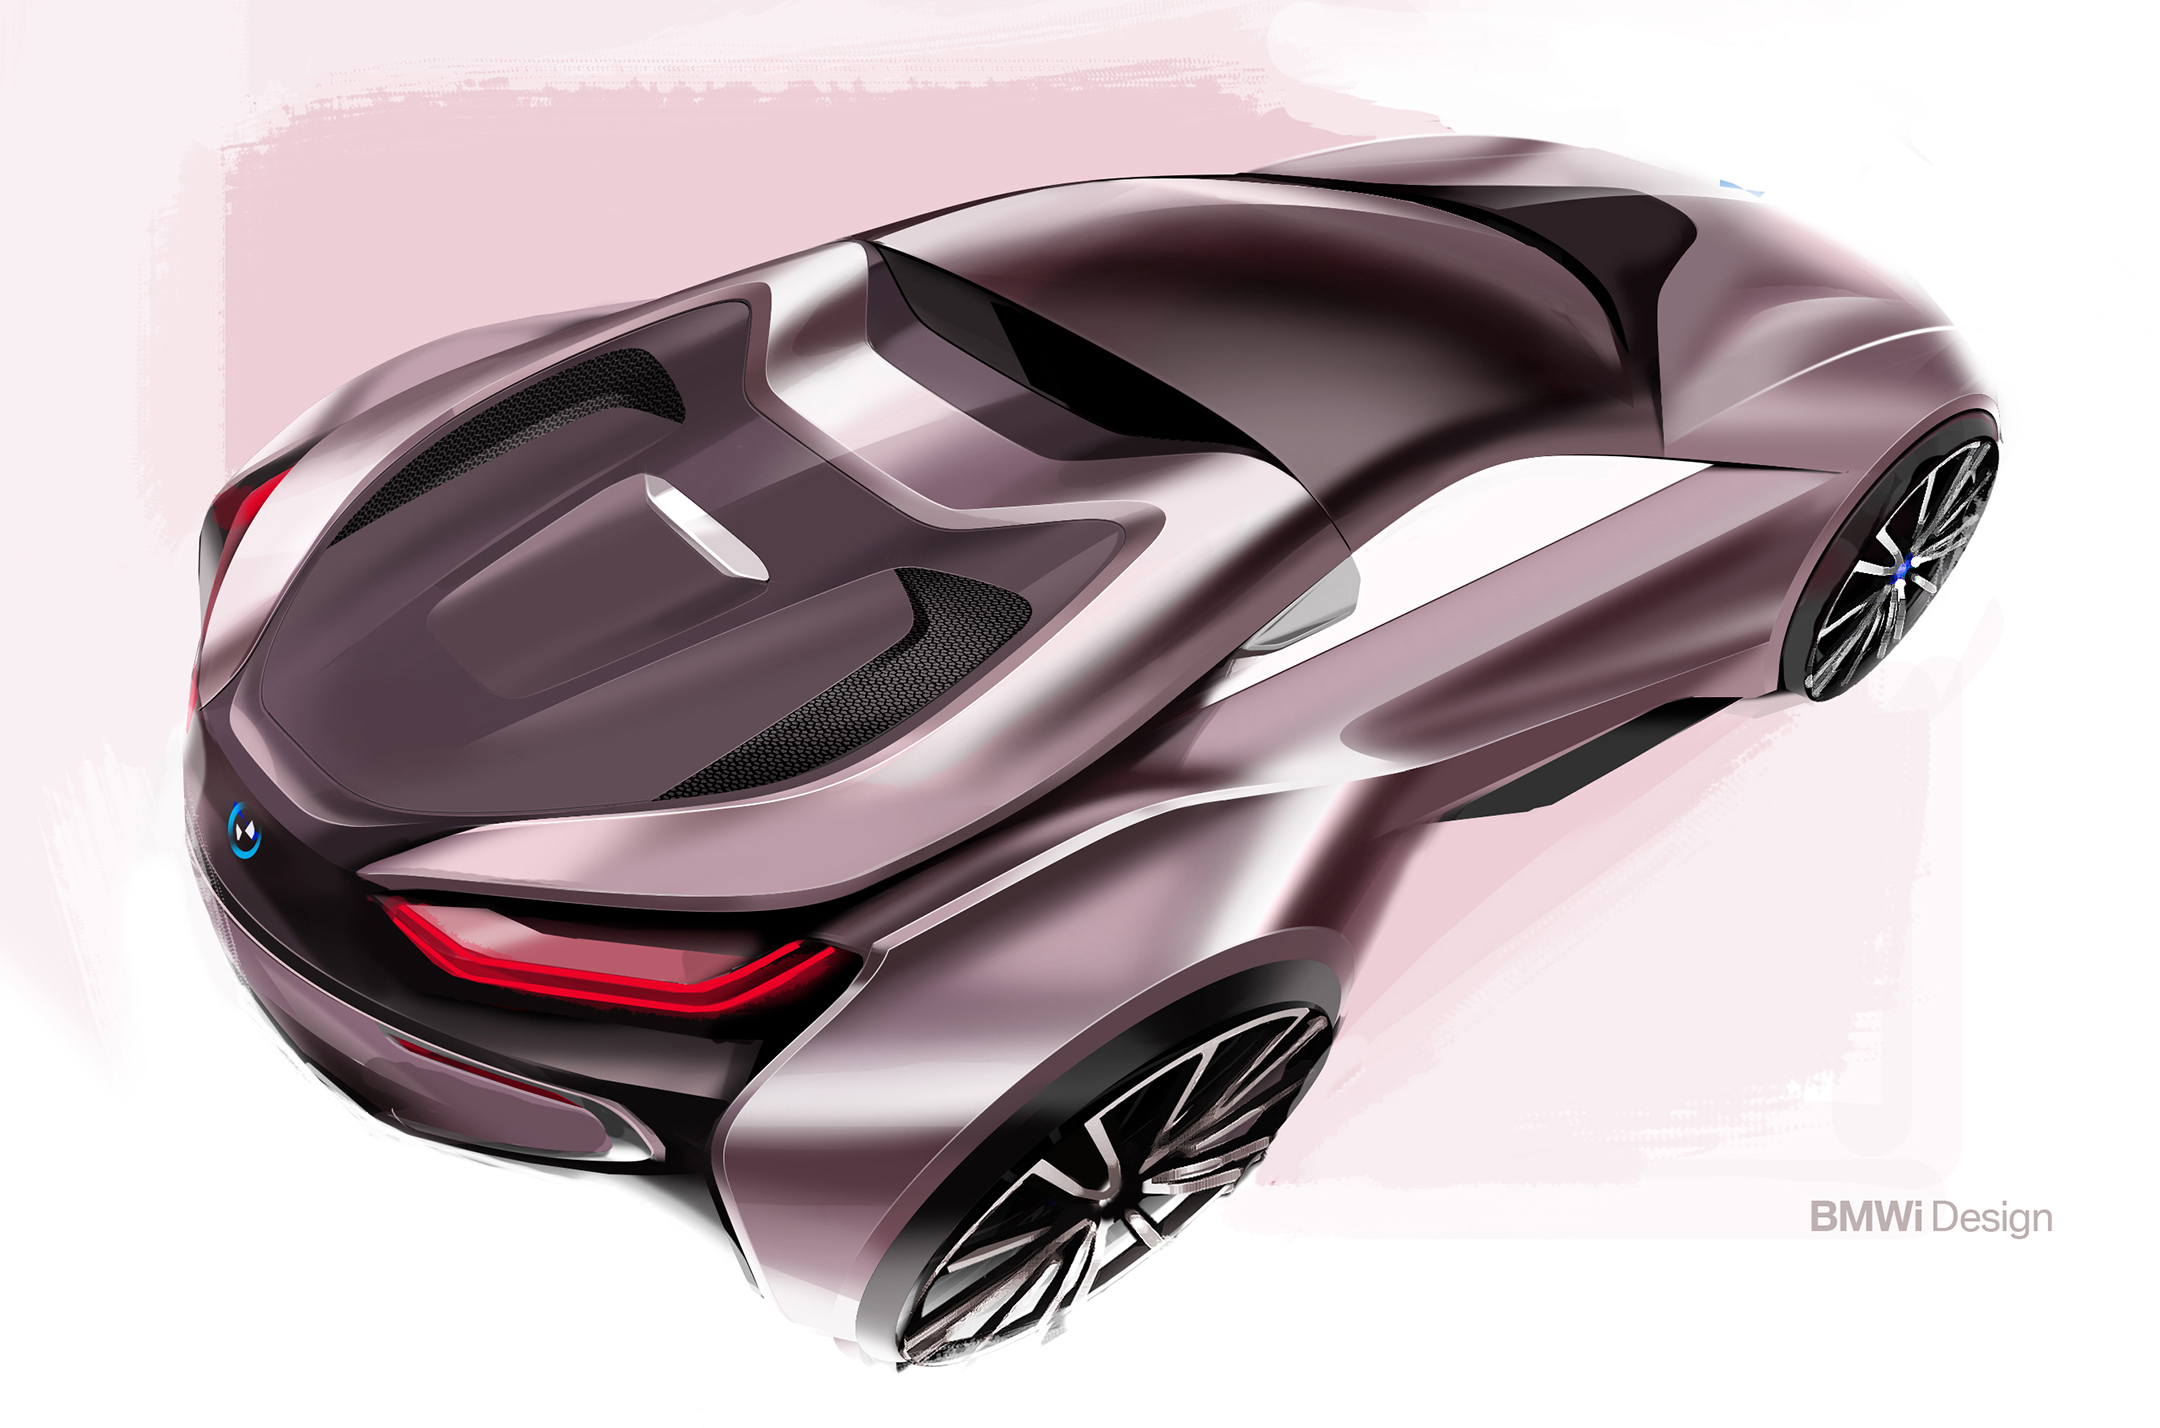 BMW i8 Roadster - 2017 - sketch design - rear